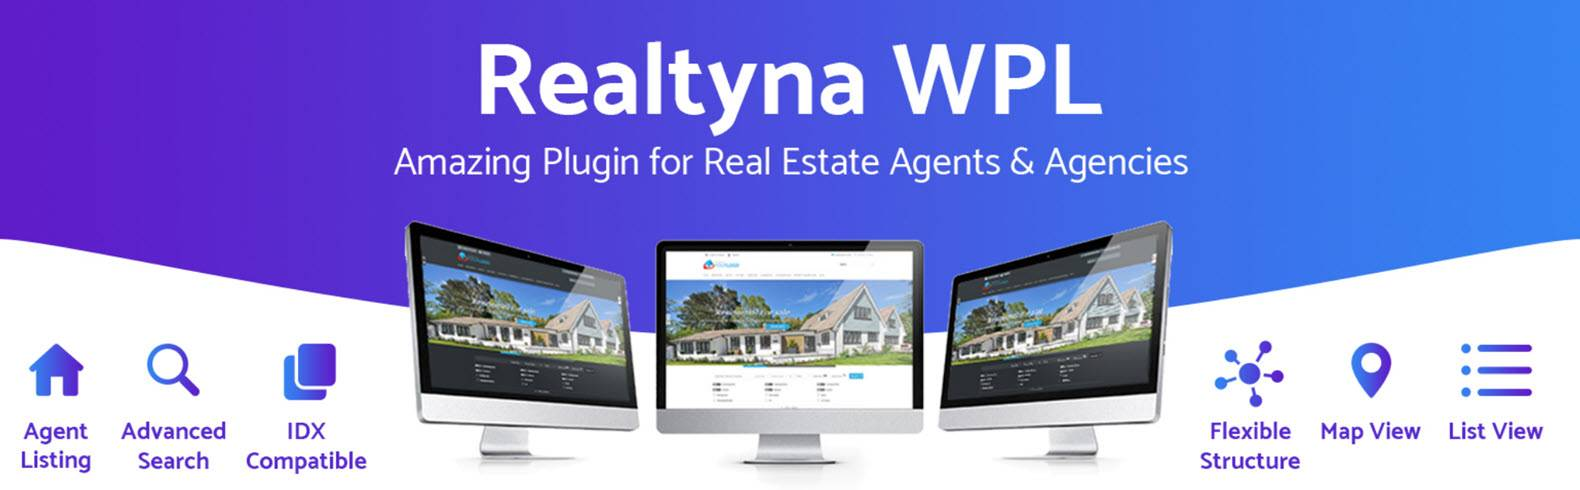 Best WordPress Plugins for Real Estate Realtnye